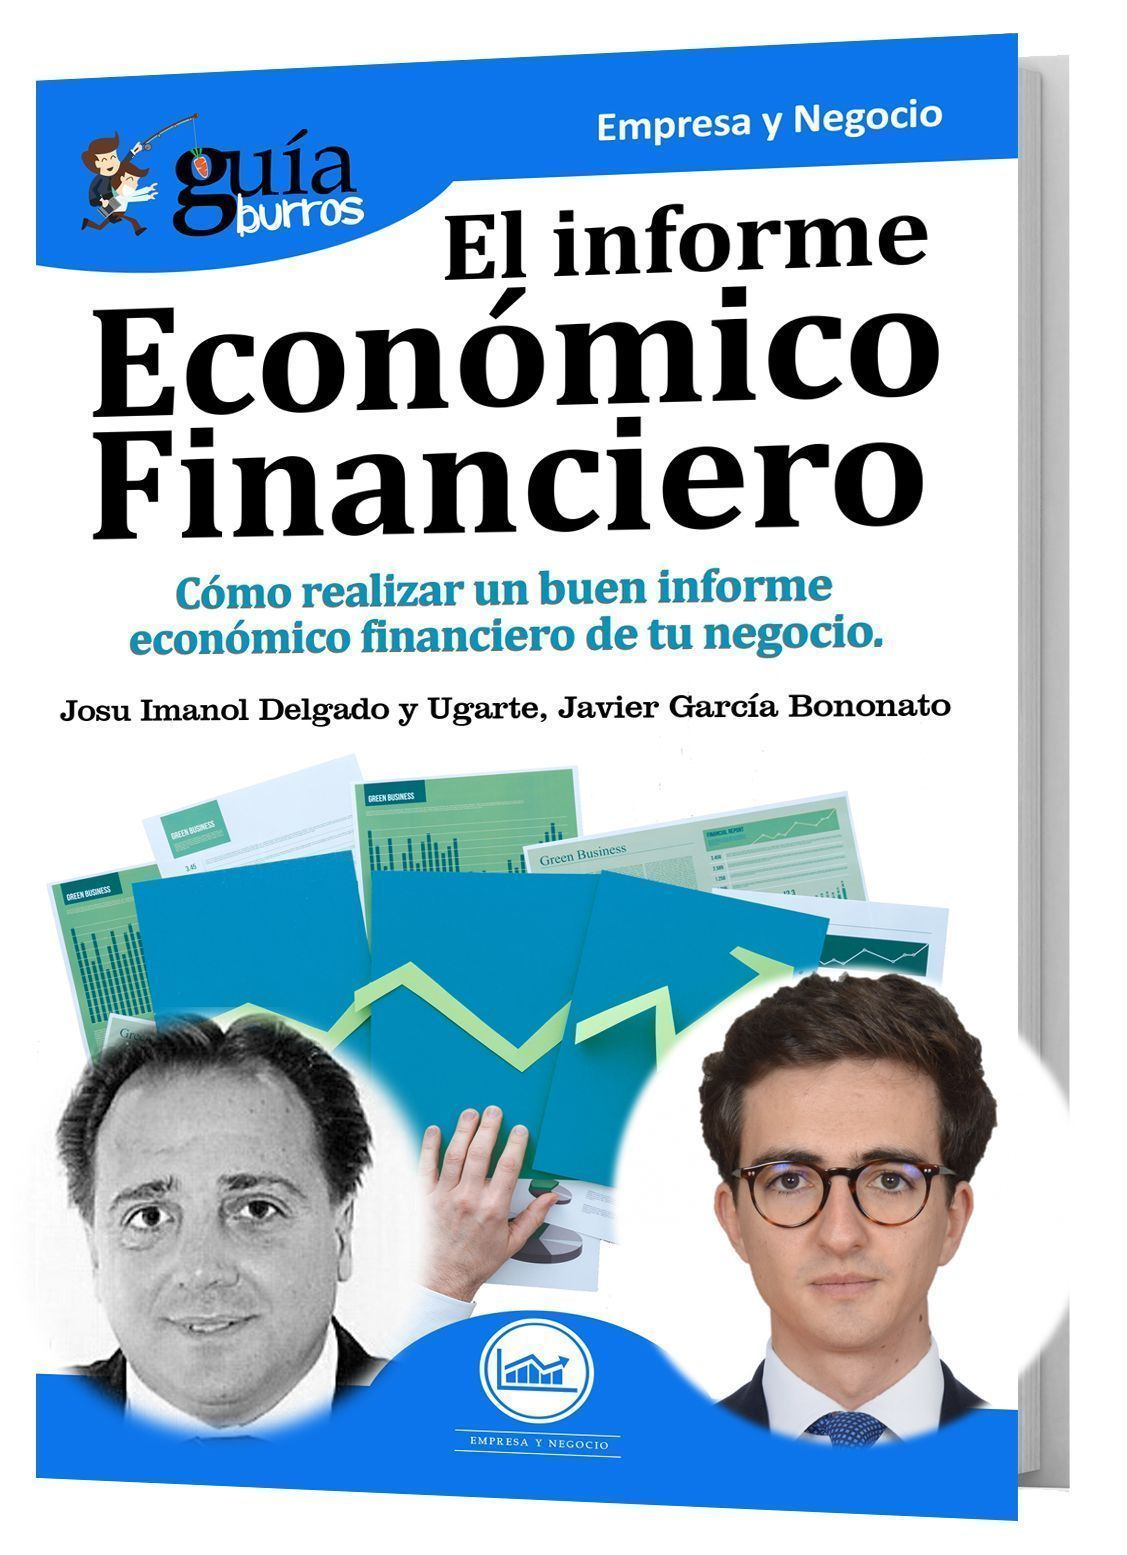 LANZAMIENTOinformeeconomicaperspect